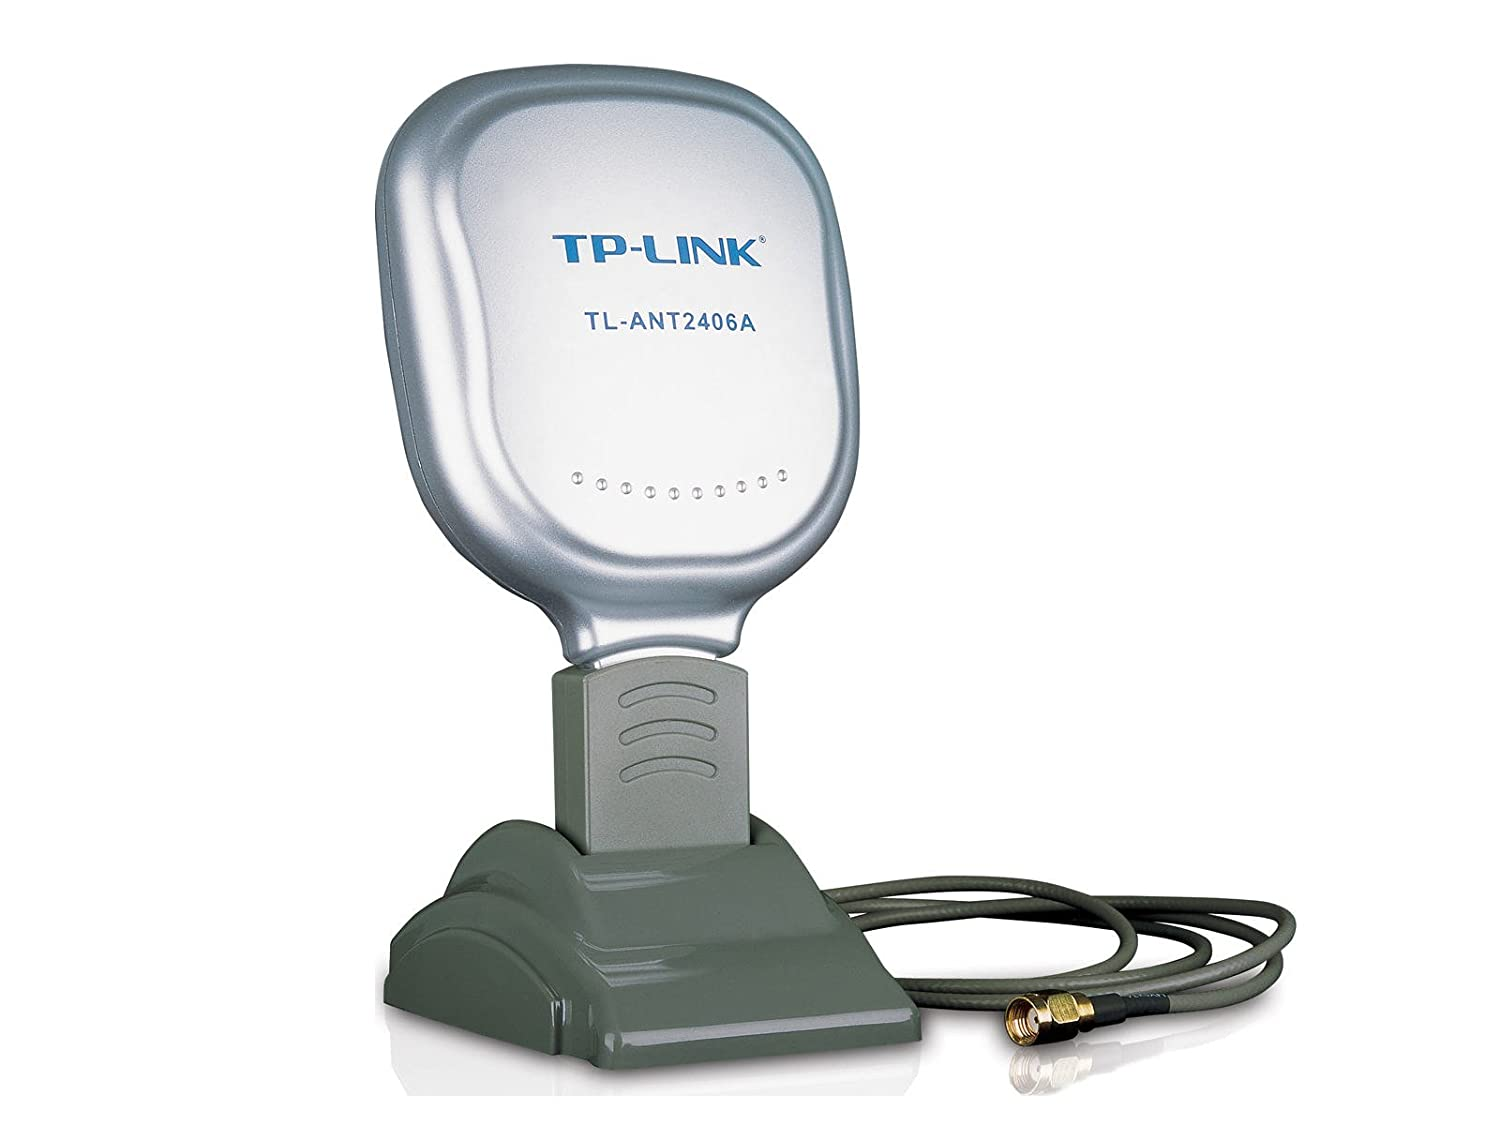 TP-LINK TL-ANT2406A Antenna